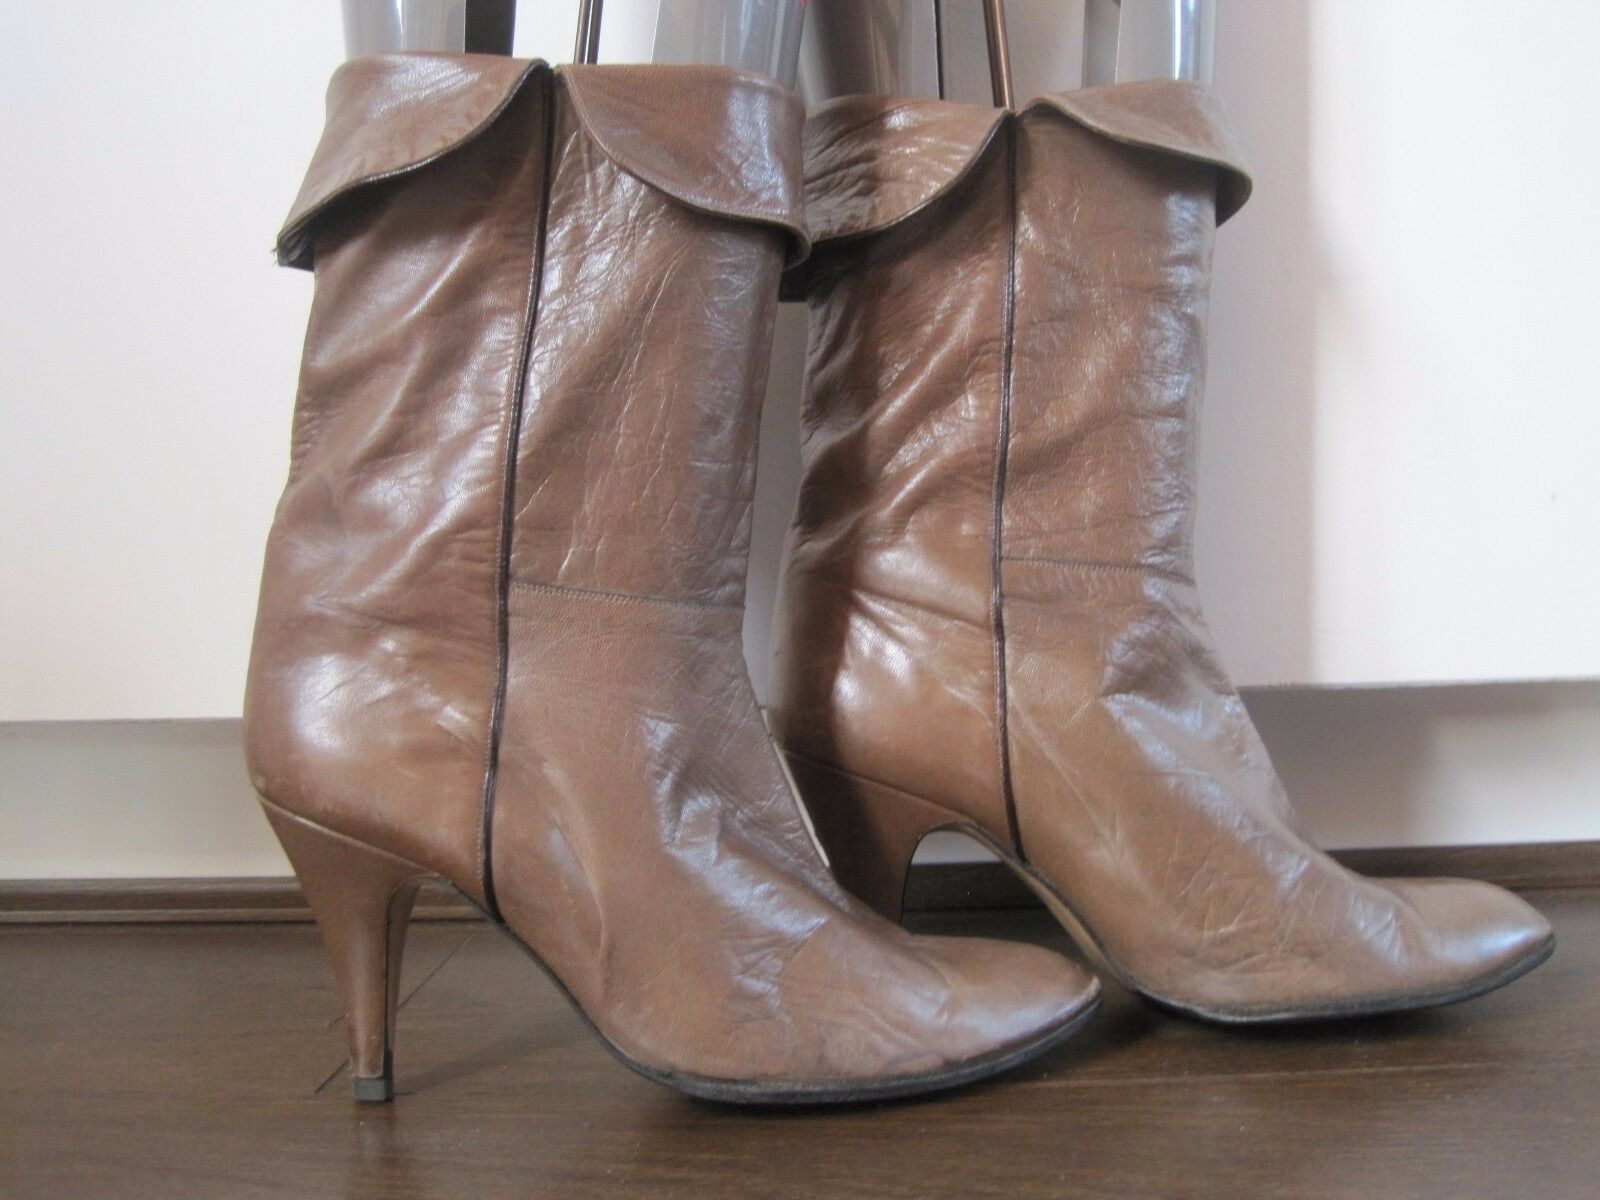 WOMEN'S tan butter soft leather mid calf pirate style boots sz US 7.5 UK 5.5